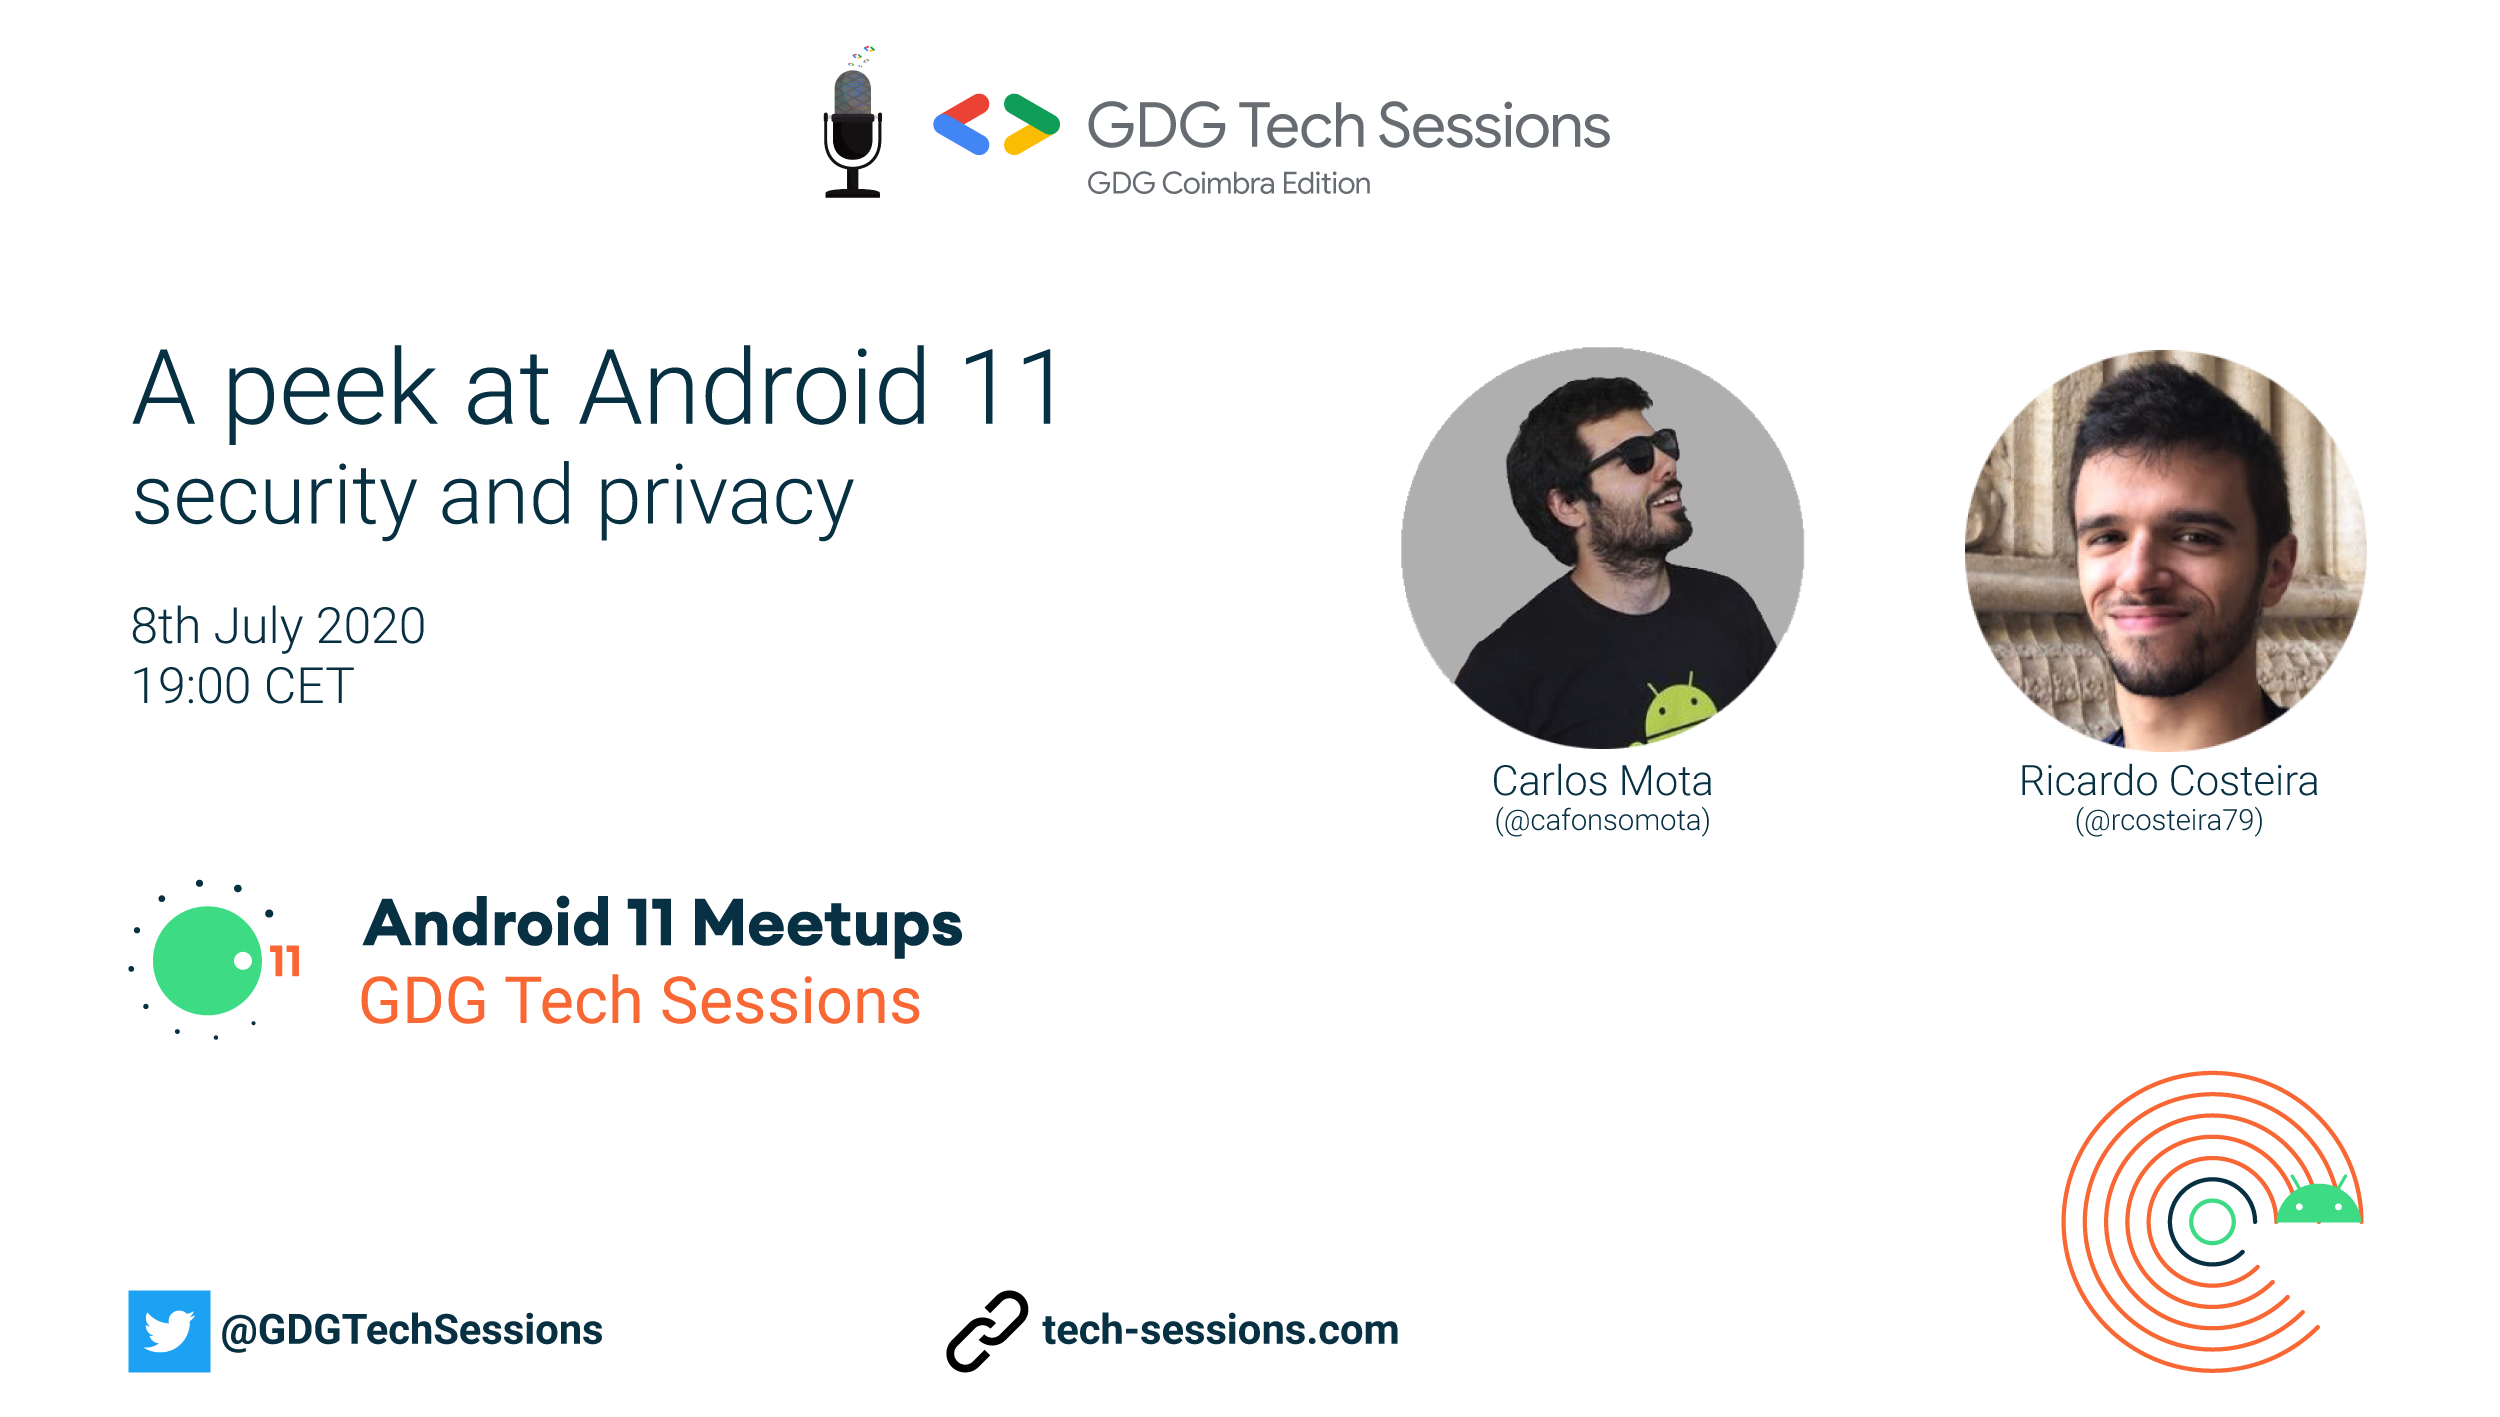 GDG Tech Sessions | A peek at Android 11 security and privacy